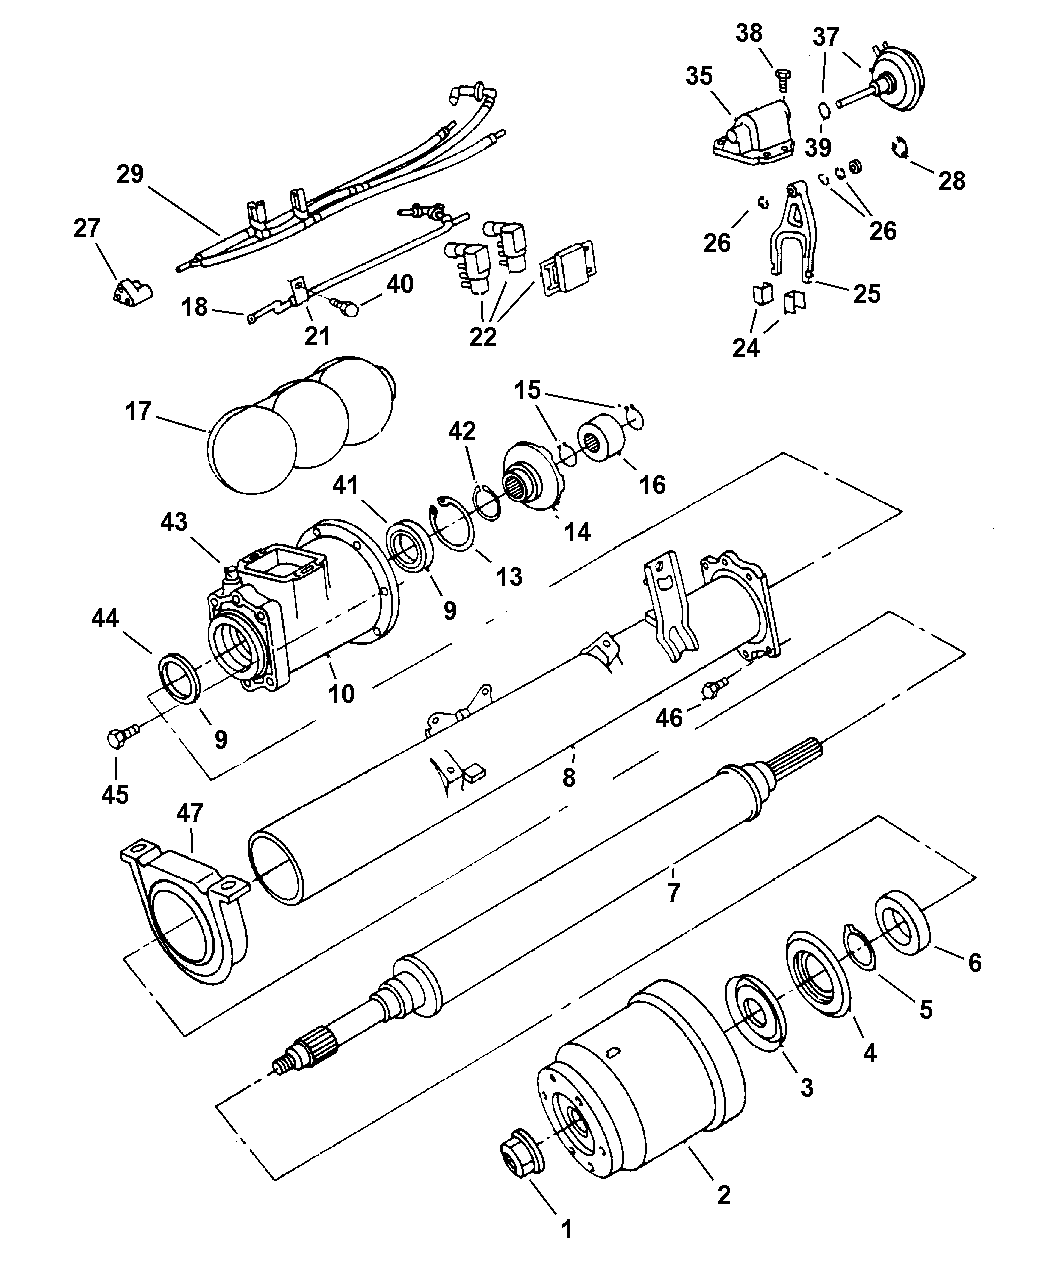 2000 Chrysler Town And Country Parts Diagram